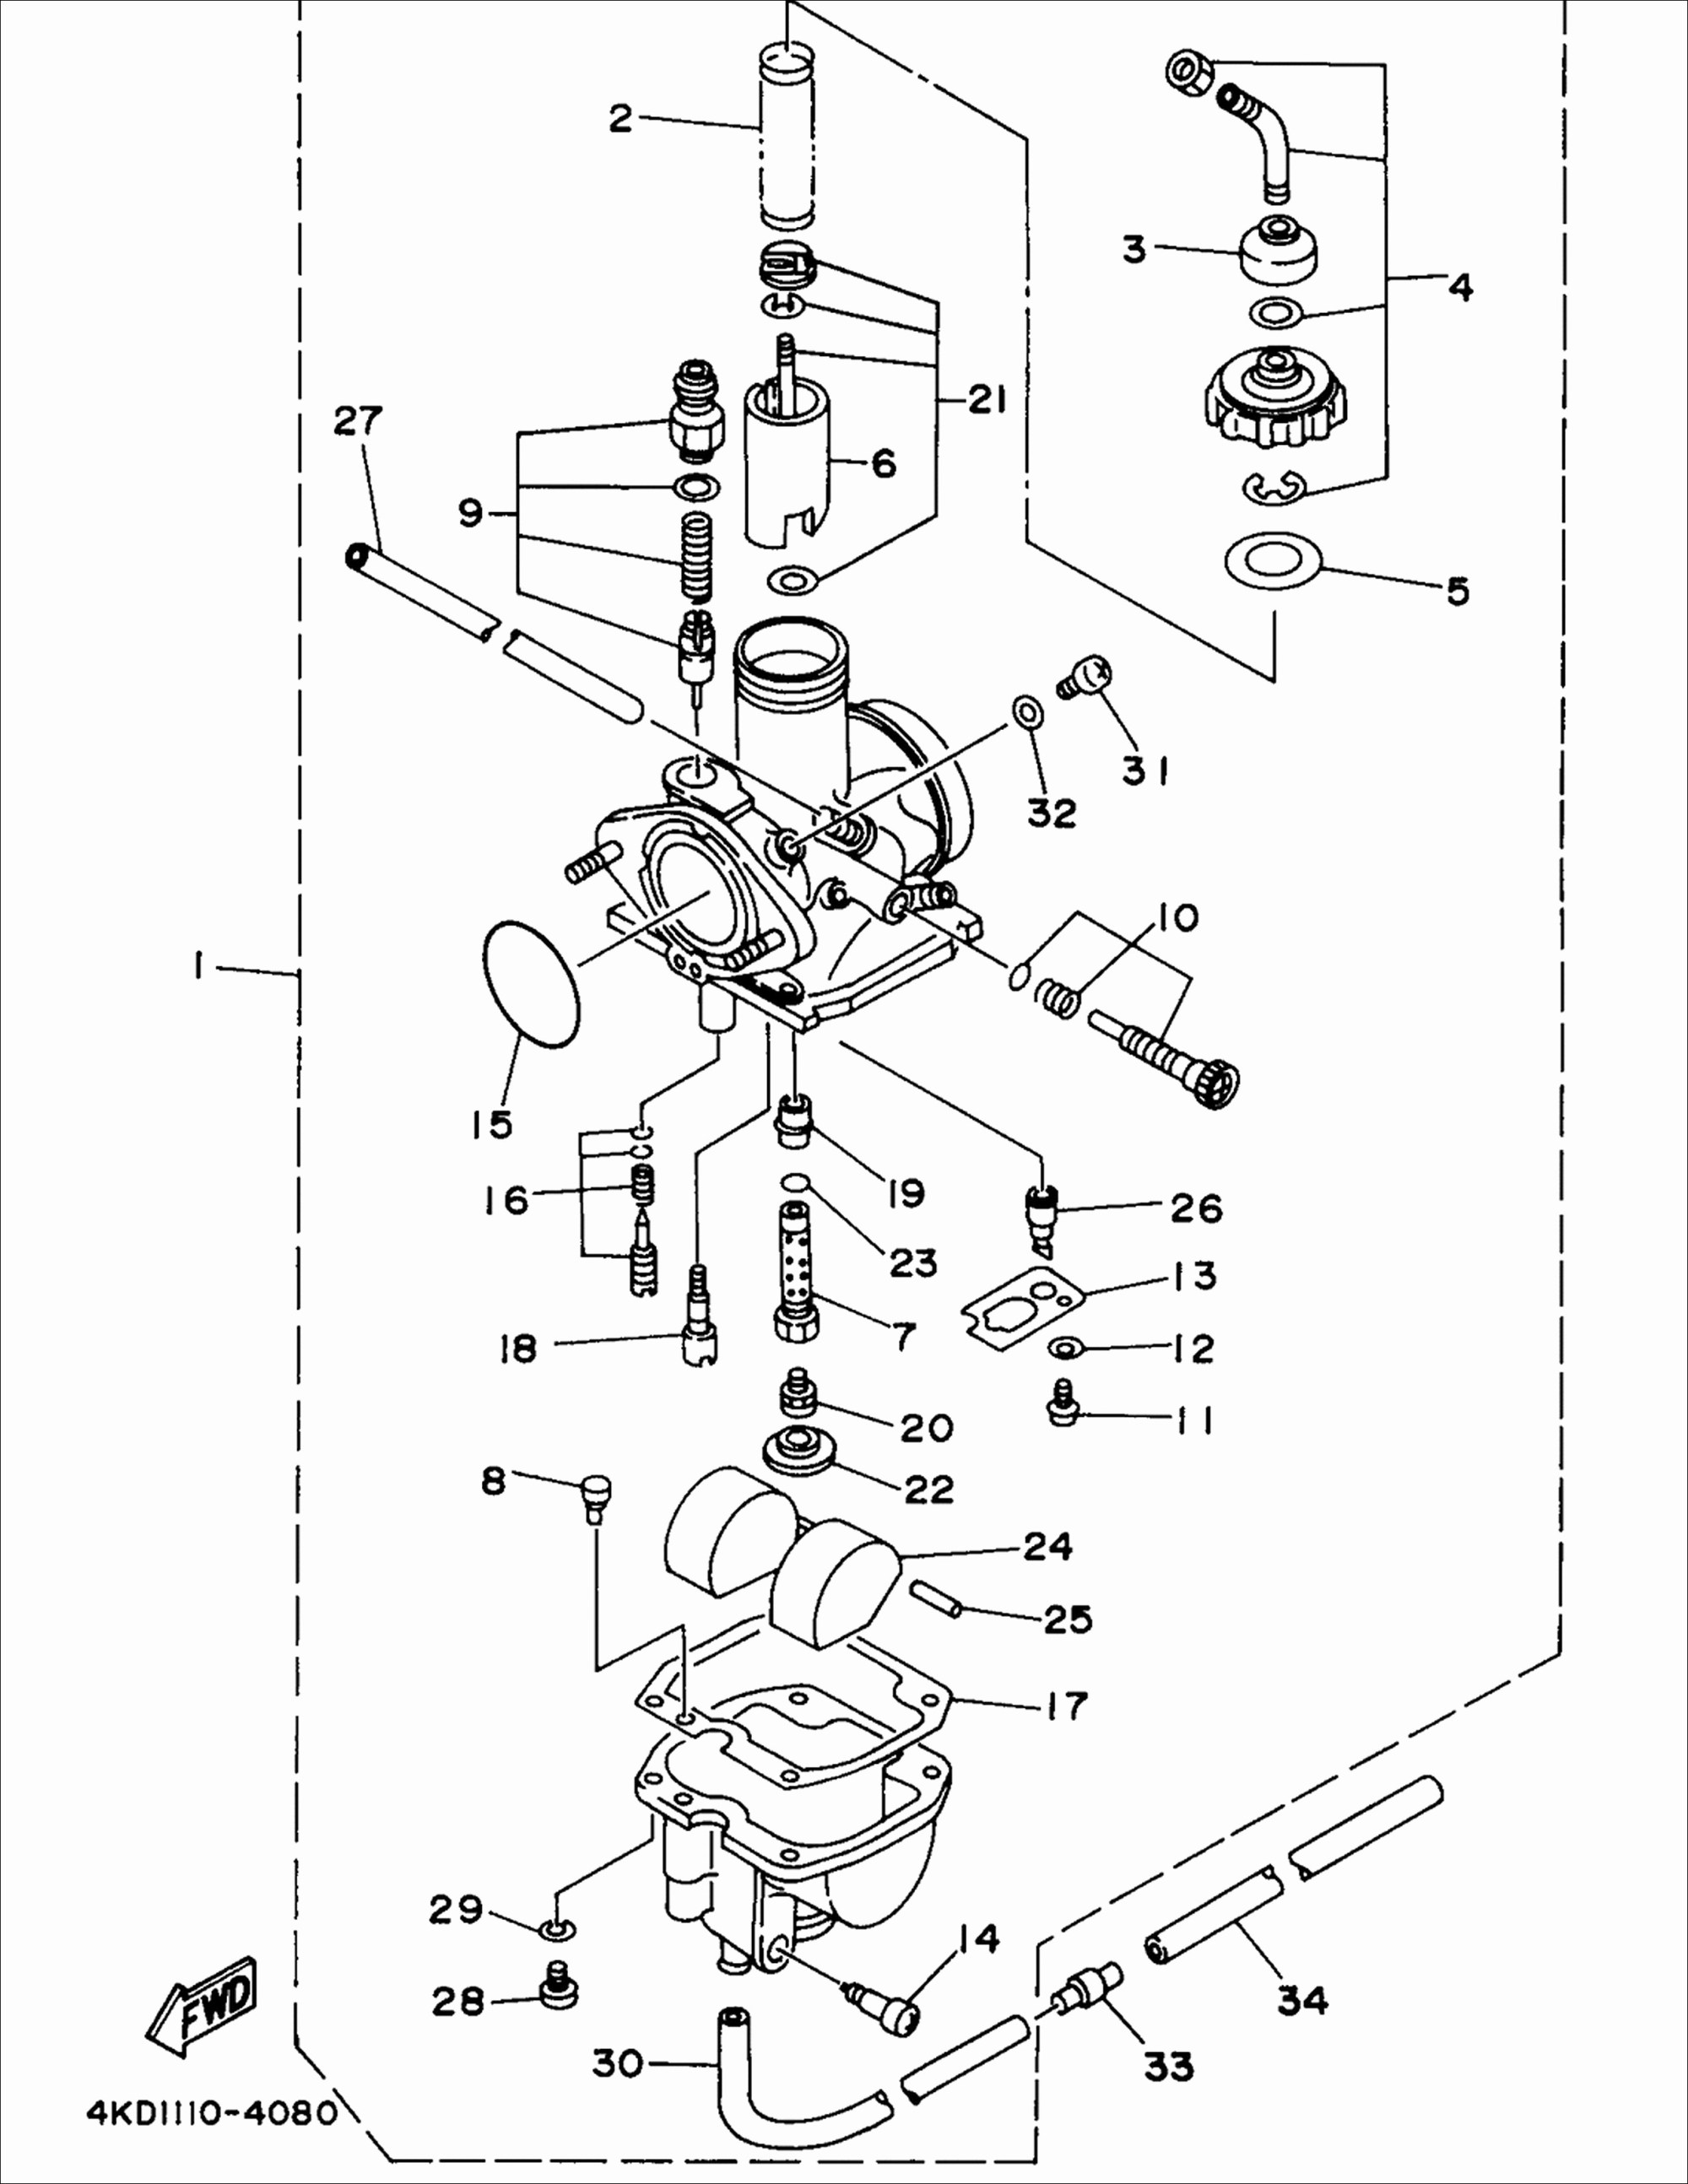 hight resolution of fuse box in 2002 pontiac bonneville wiring diagram center 02 bonneville wire diagram wiring diagram2002 pontiac